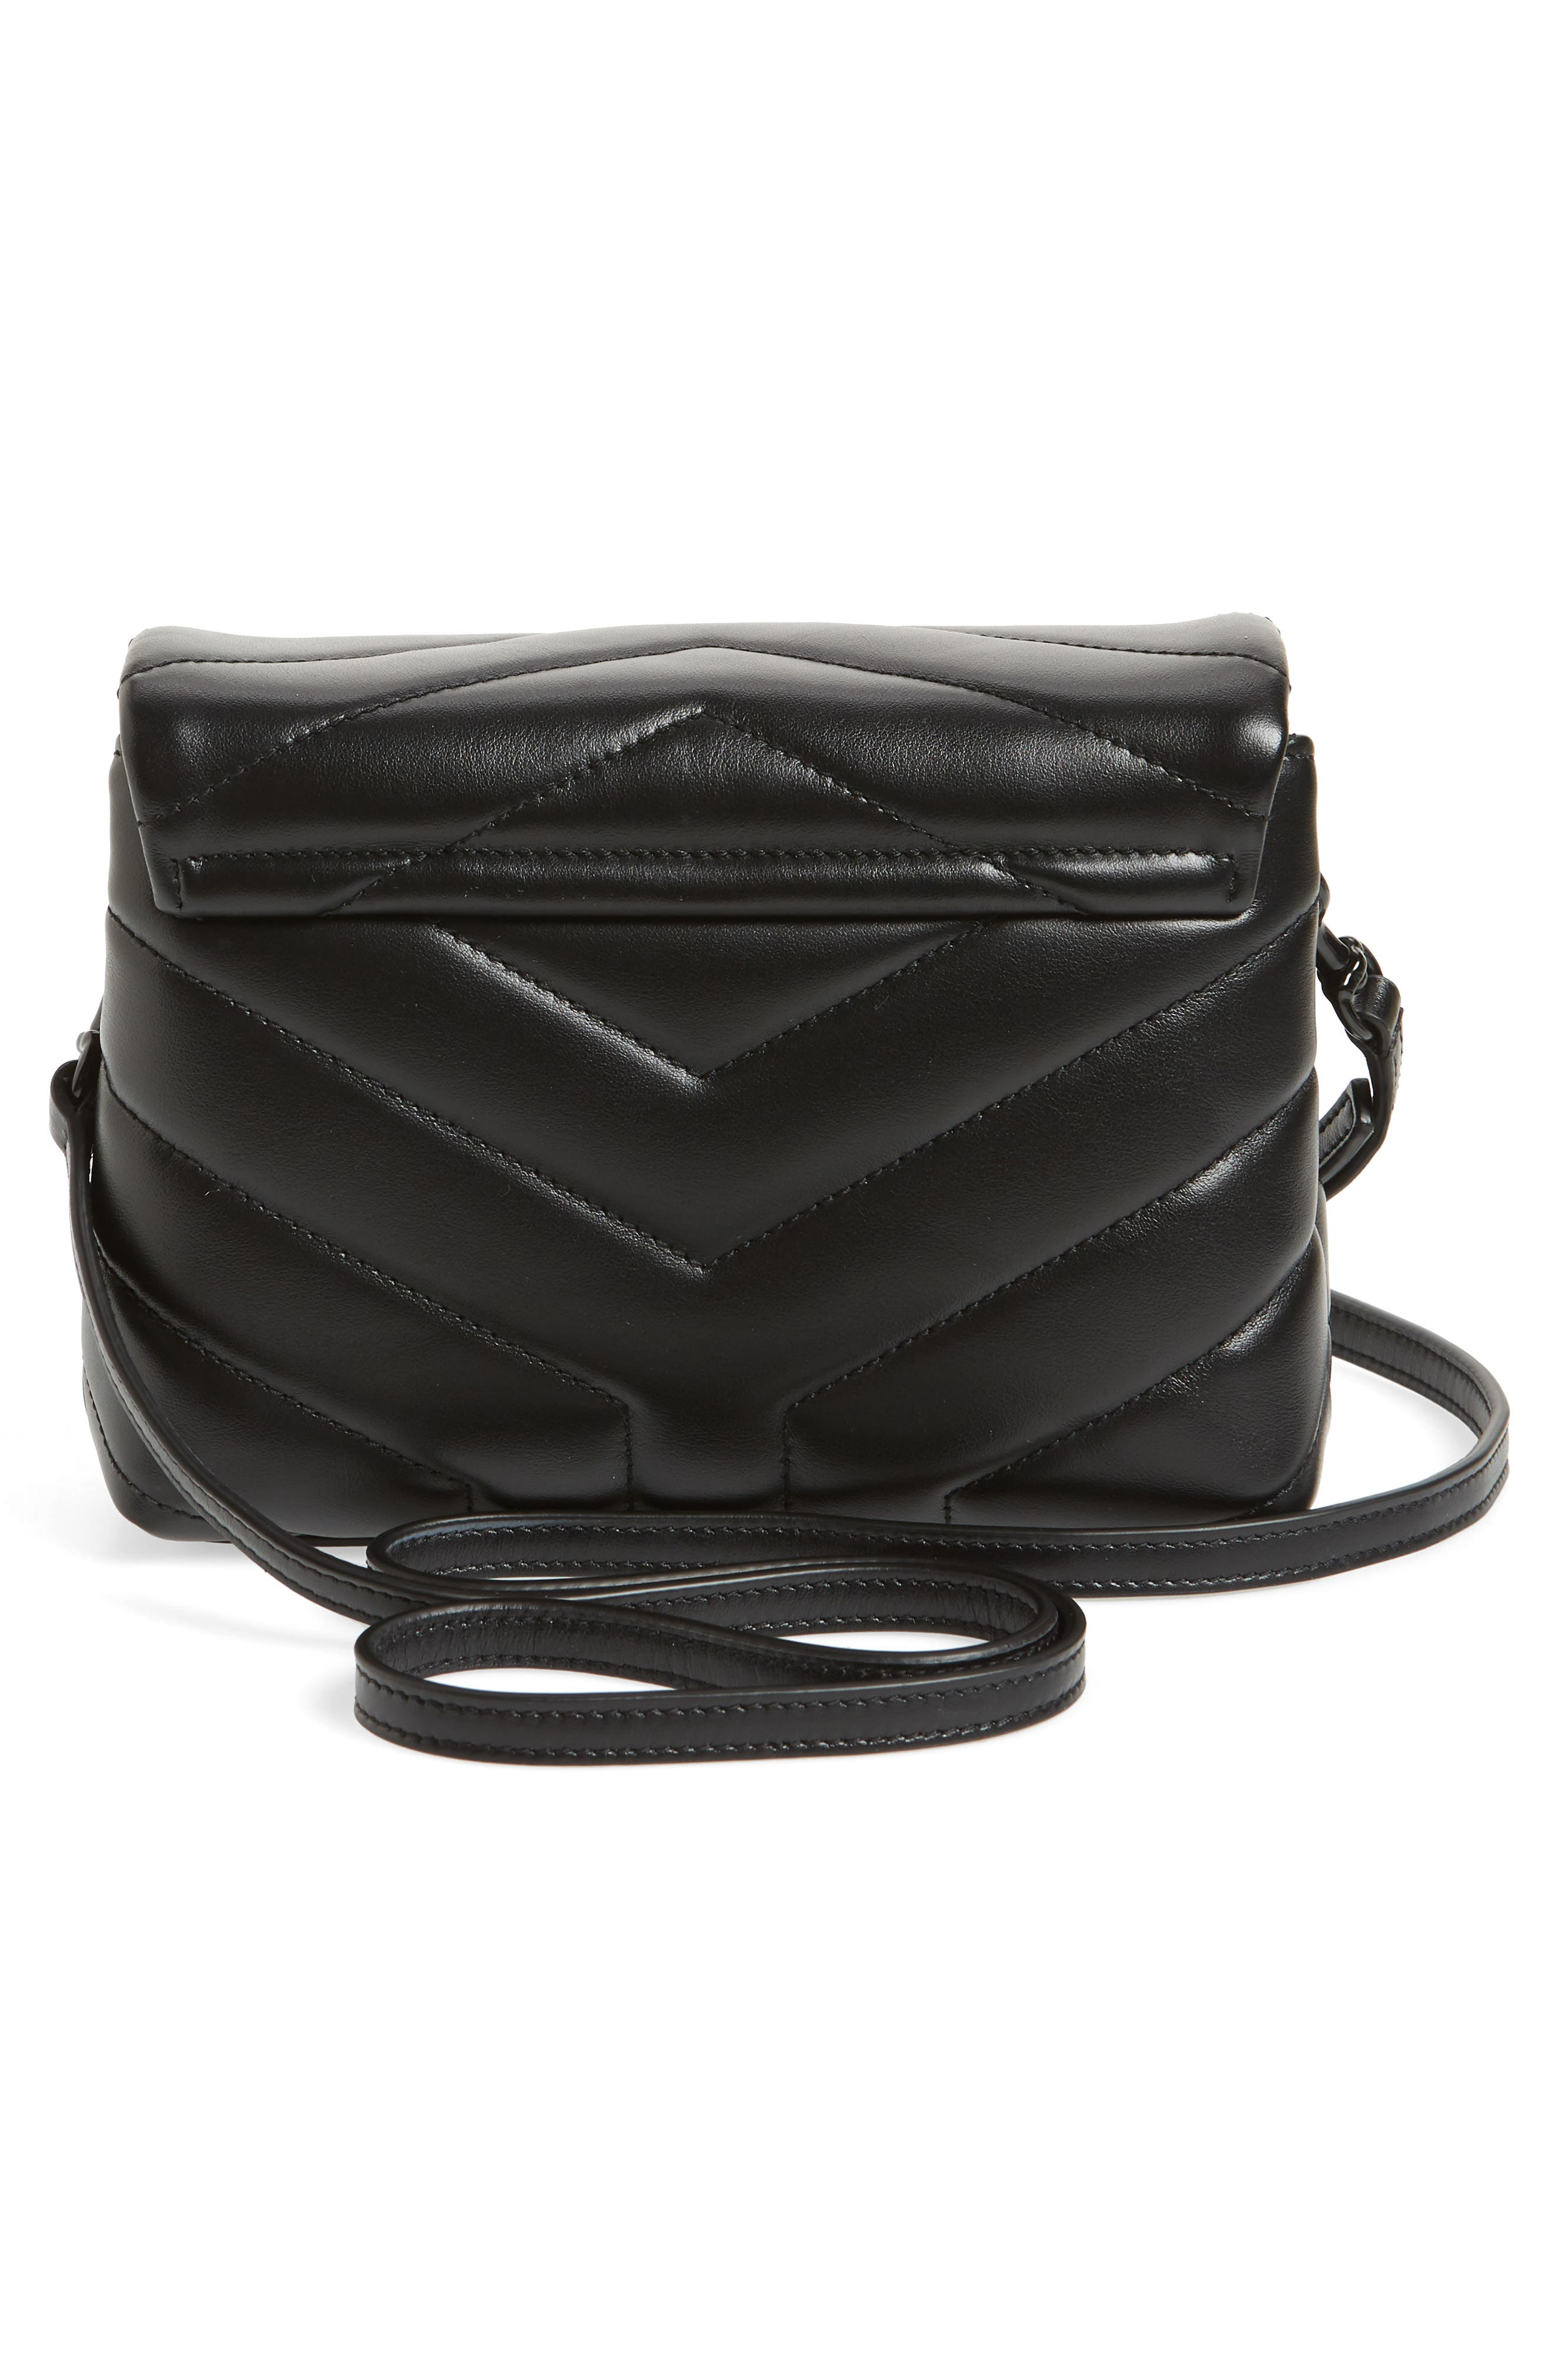 Toy Loulou Leather Crossbody Bag,                             Alternate thumbnail 3, color,                             NERO